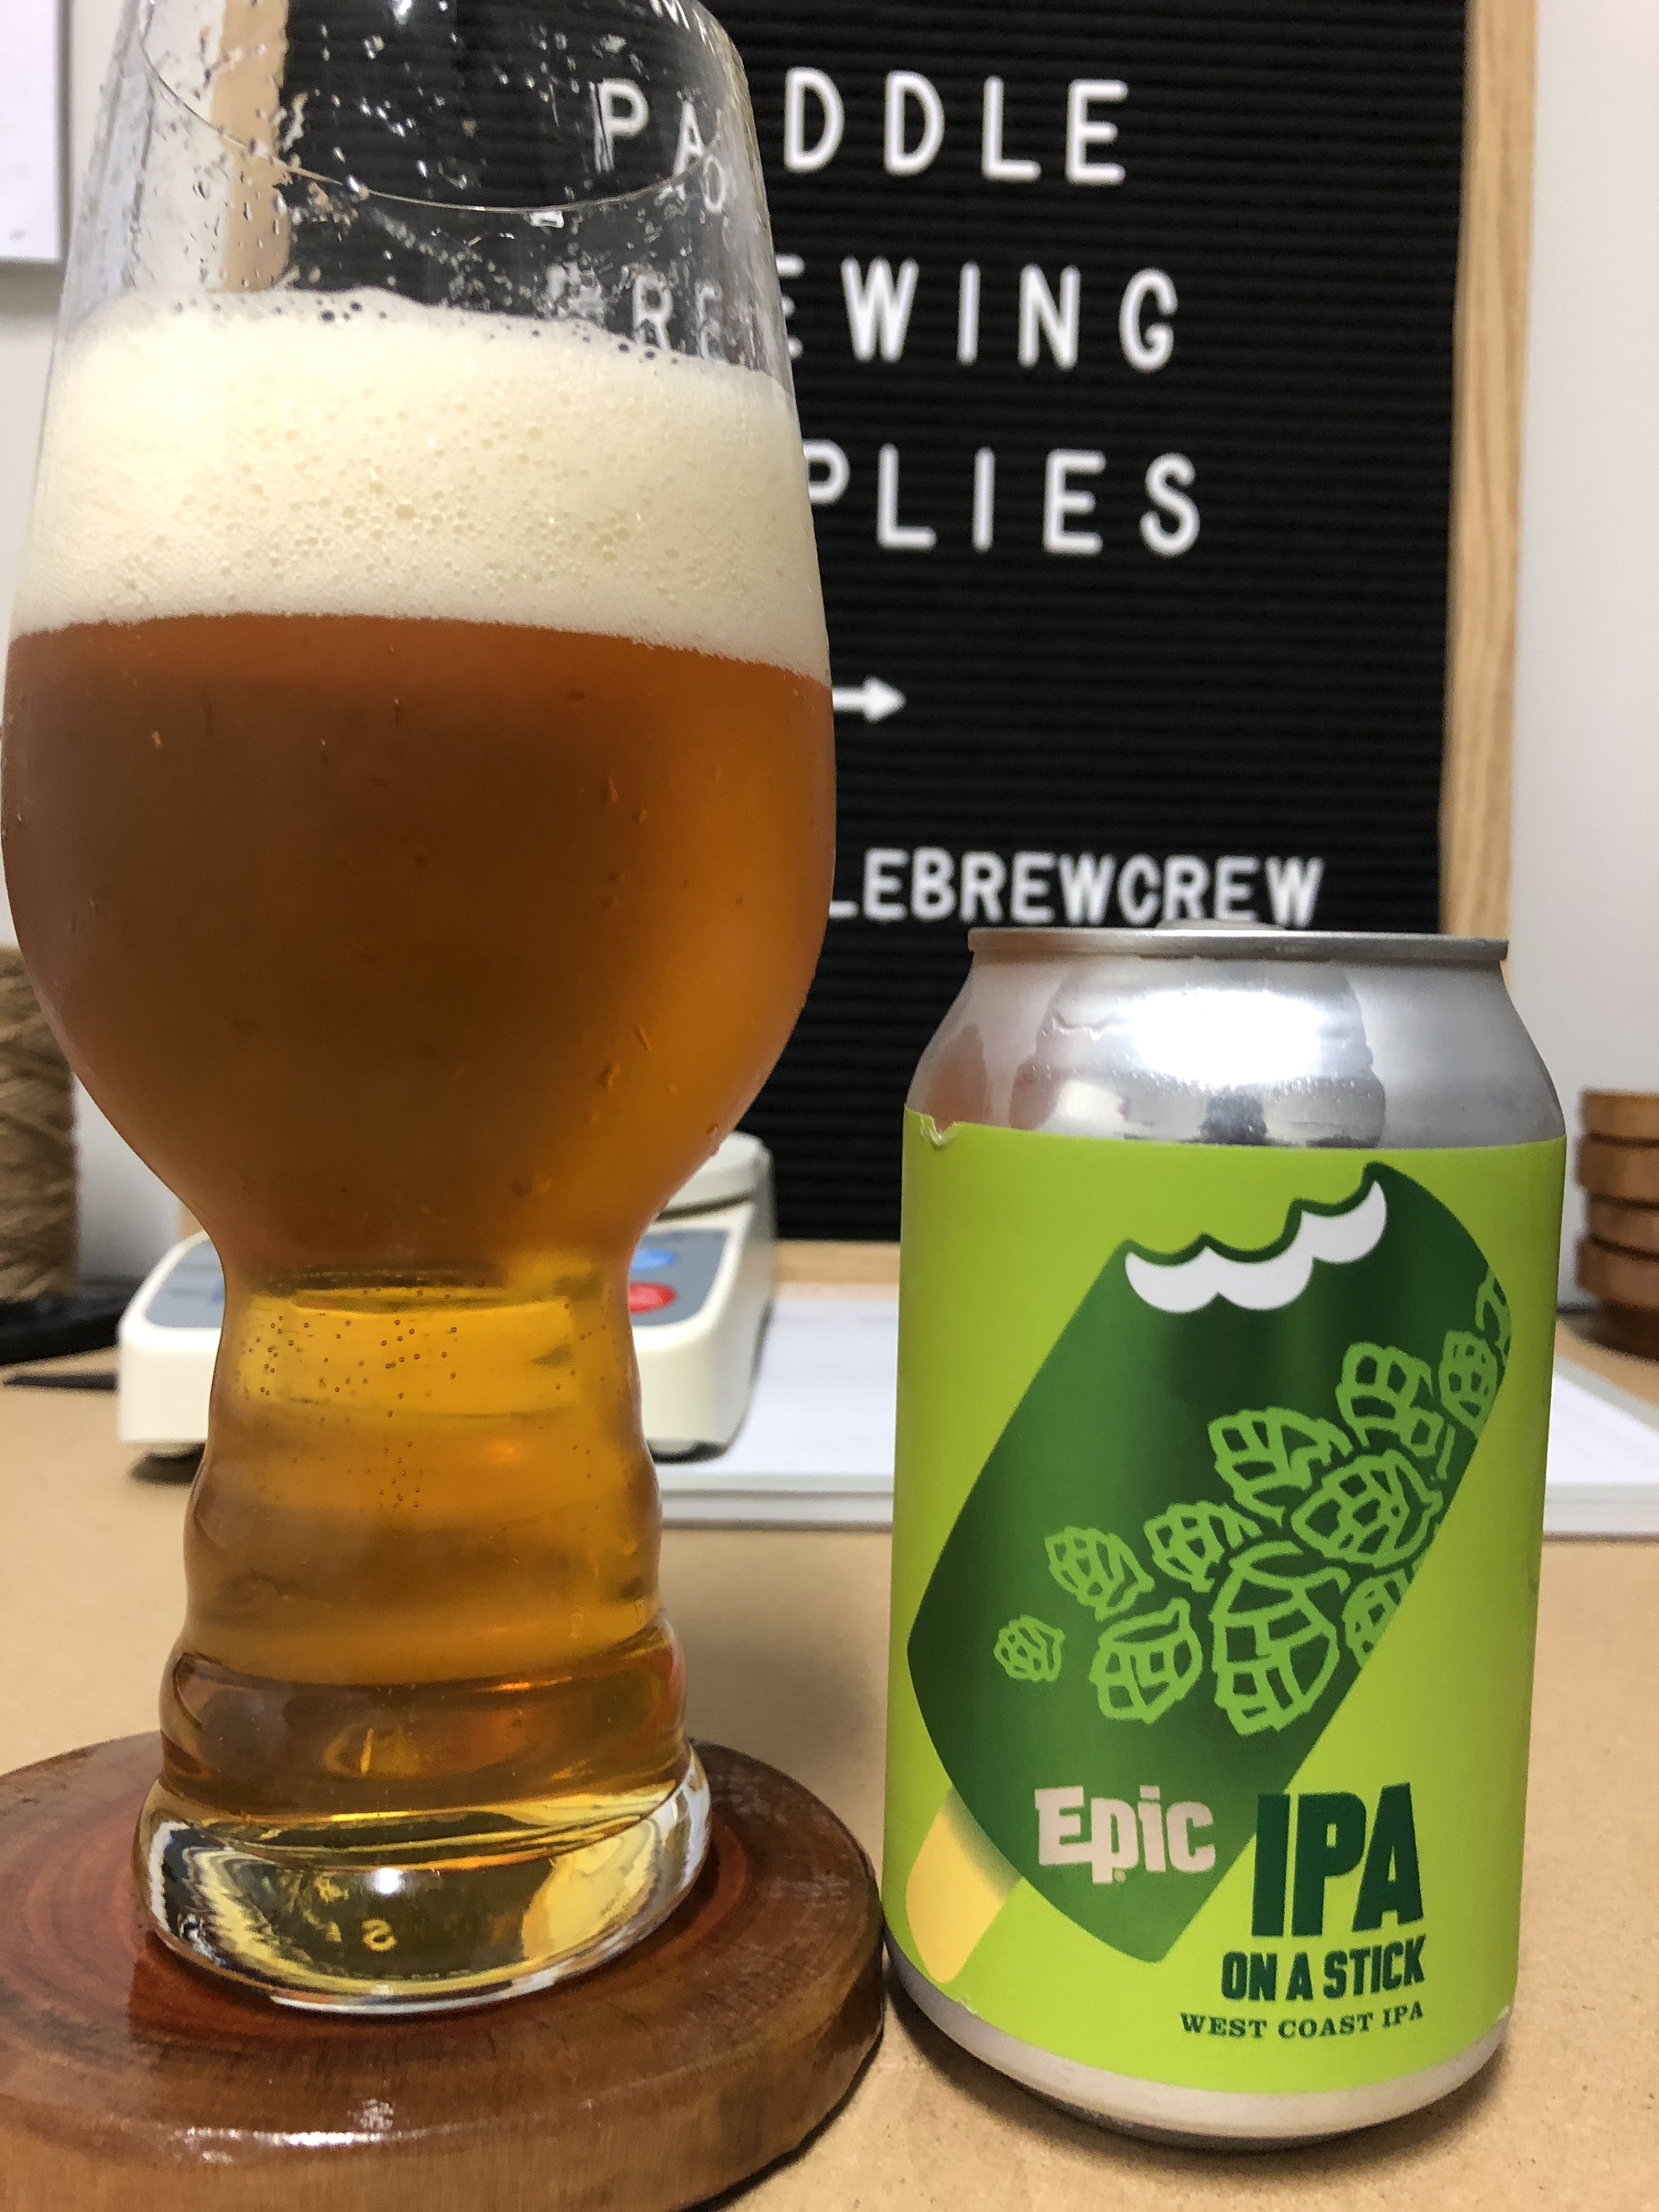 epic IPA on a stick